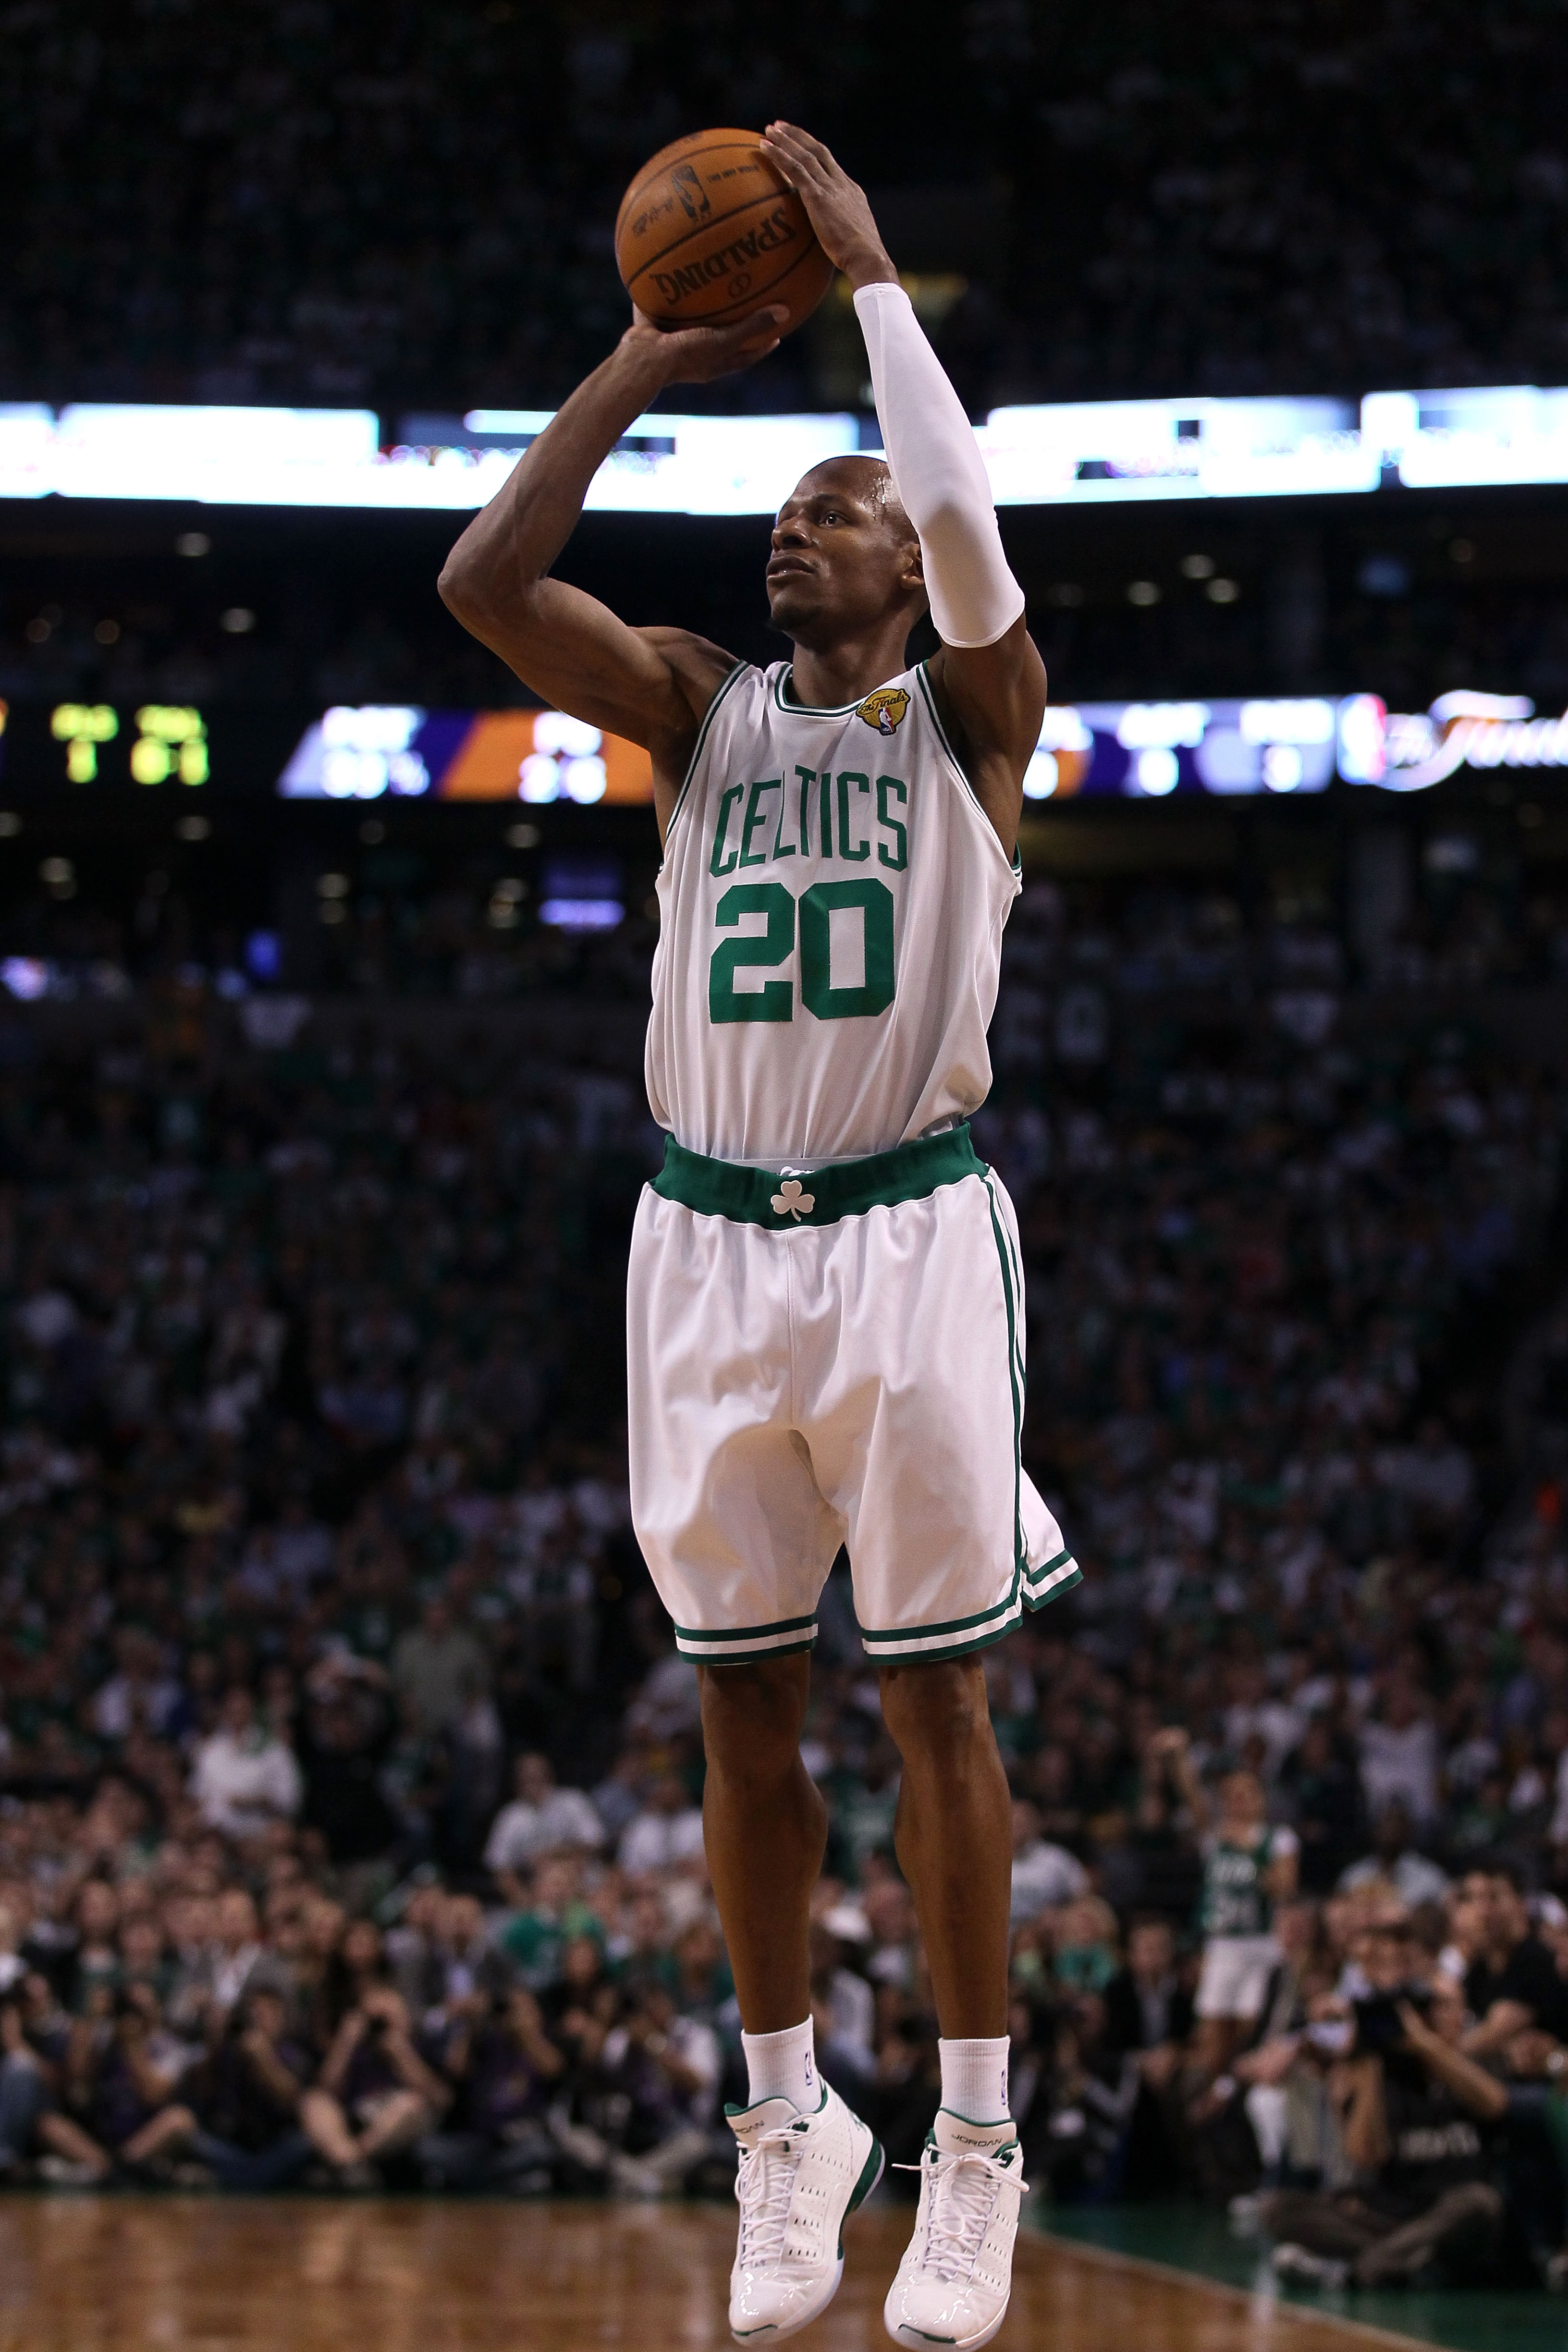 BOSTON - JUNE 08:  Ray Allen #20 of the Boston Celtics attempts a shot in the first quarter against the Los Angeles Lakers in Game Three of the 2010 NBA Finals on June 8, 2010 at TD Garden in Boston, Massachusetts. NOTE TO USER: User expressly acknowledge